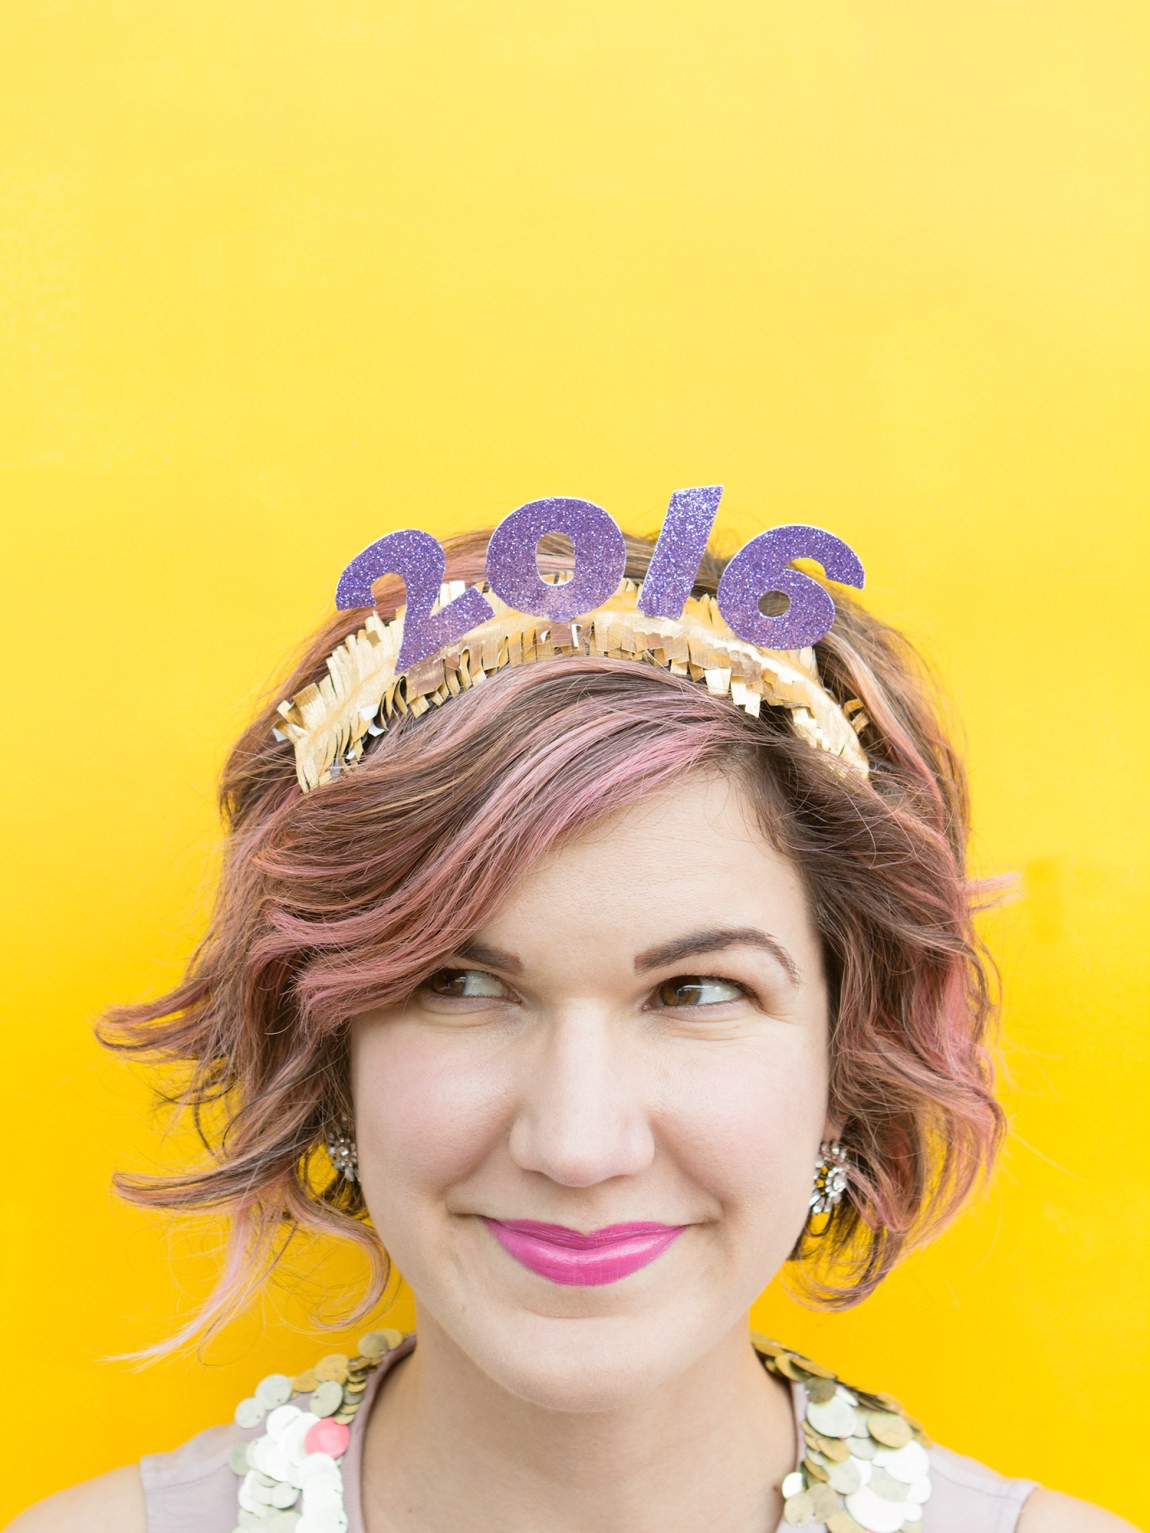 Ring in the new year with these festive easy-to-make diy headbands! (click through for tutorial)